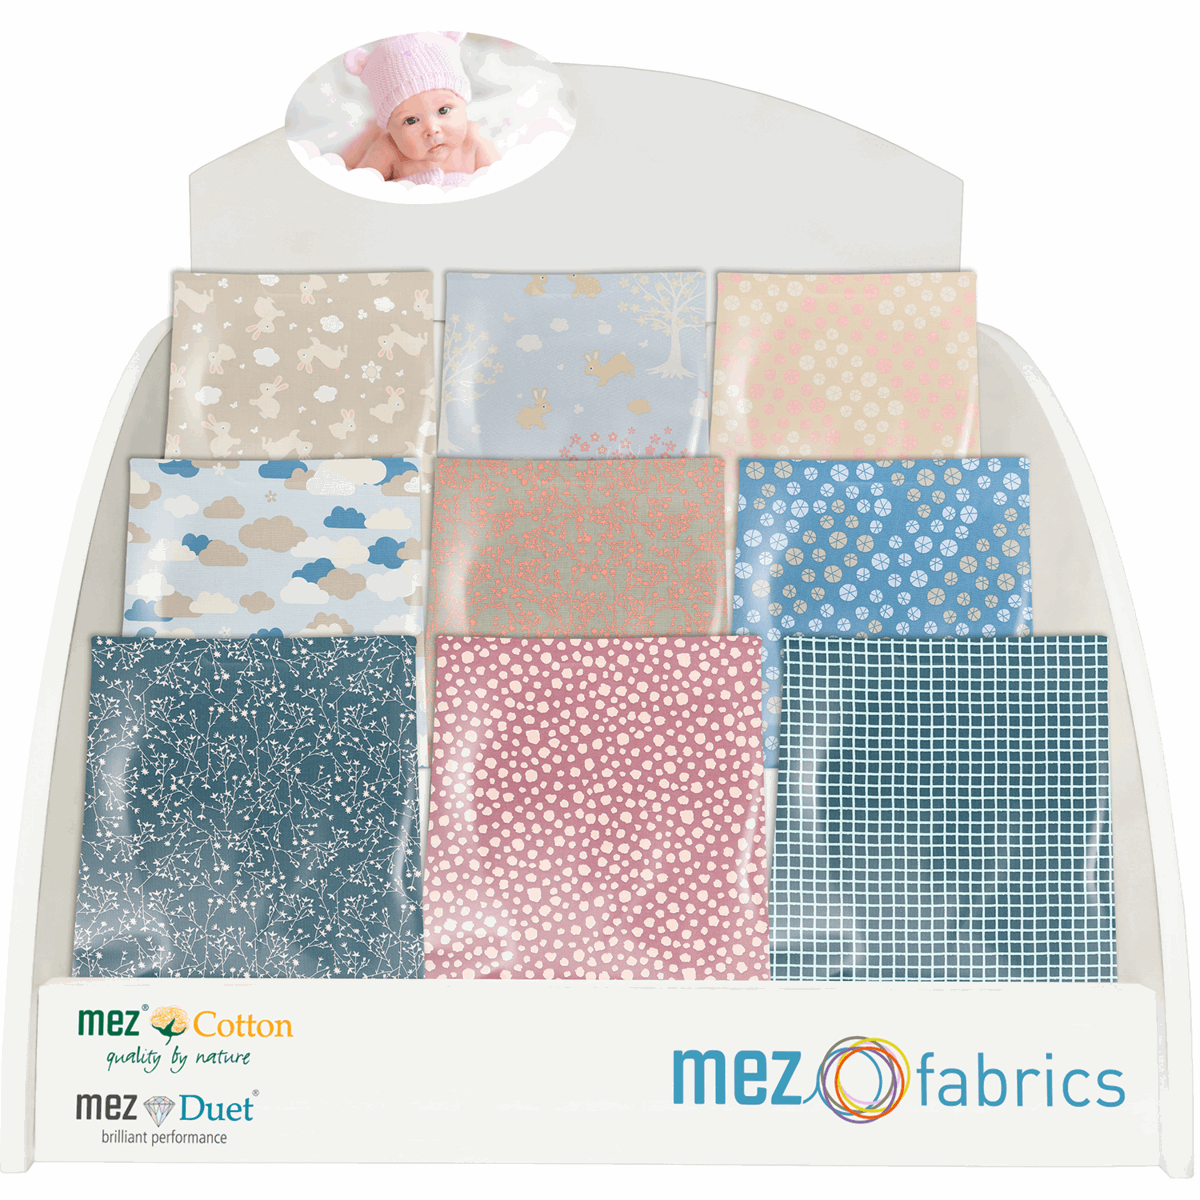 Picture of Counter Display: Mez Pre-Cut Fabrics